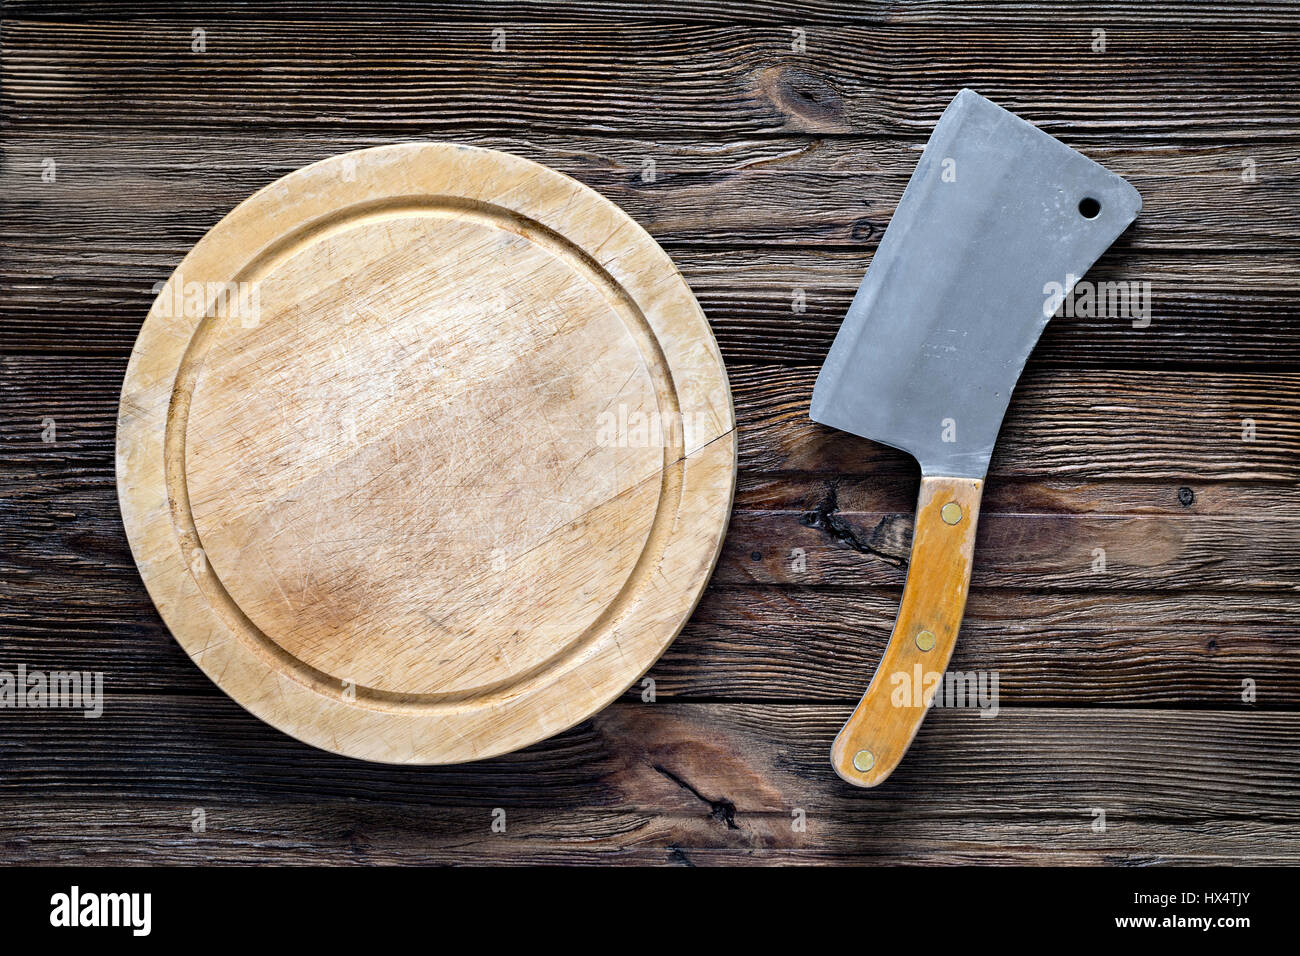 Old meat cleaver or butcher knife and round wooden chopping board. Top view with copy space - Stock Image